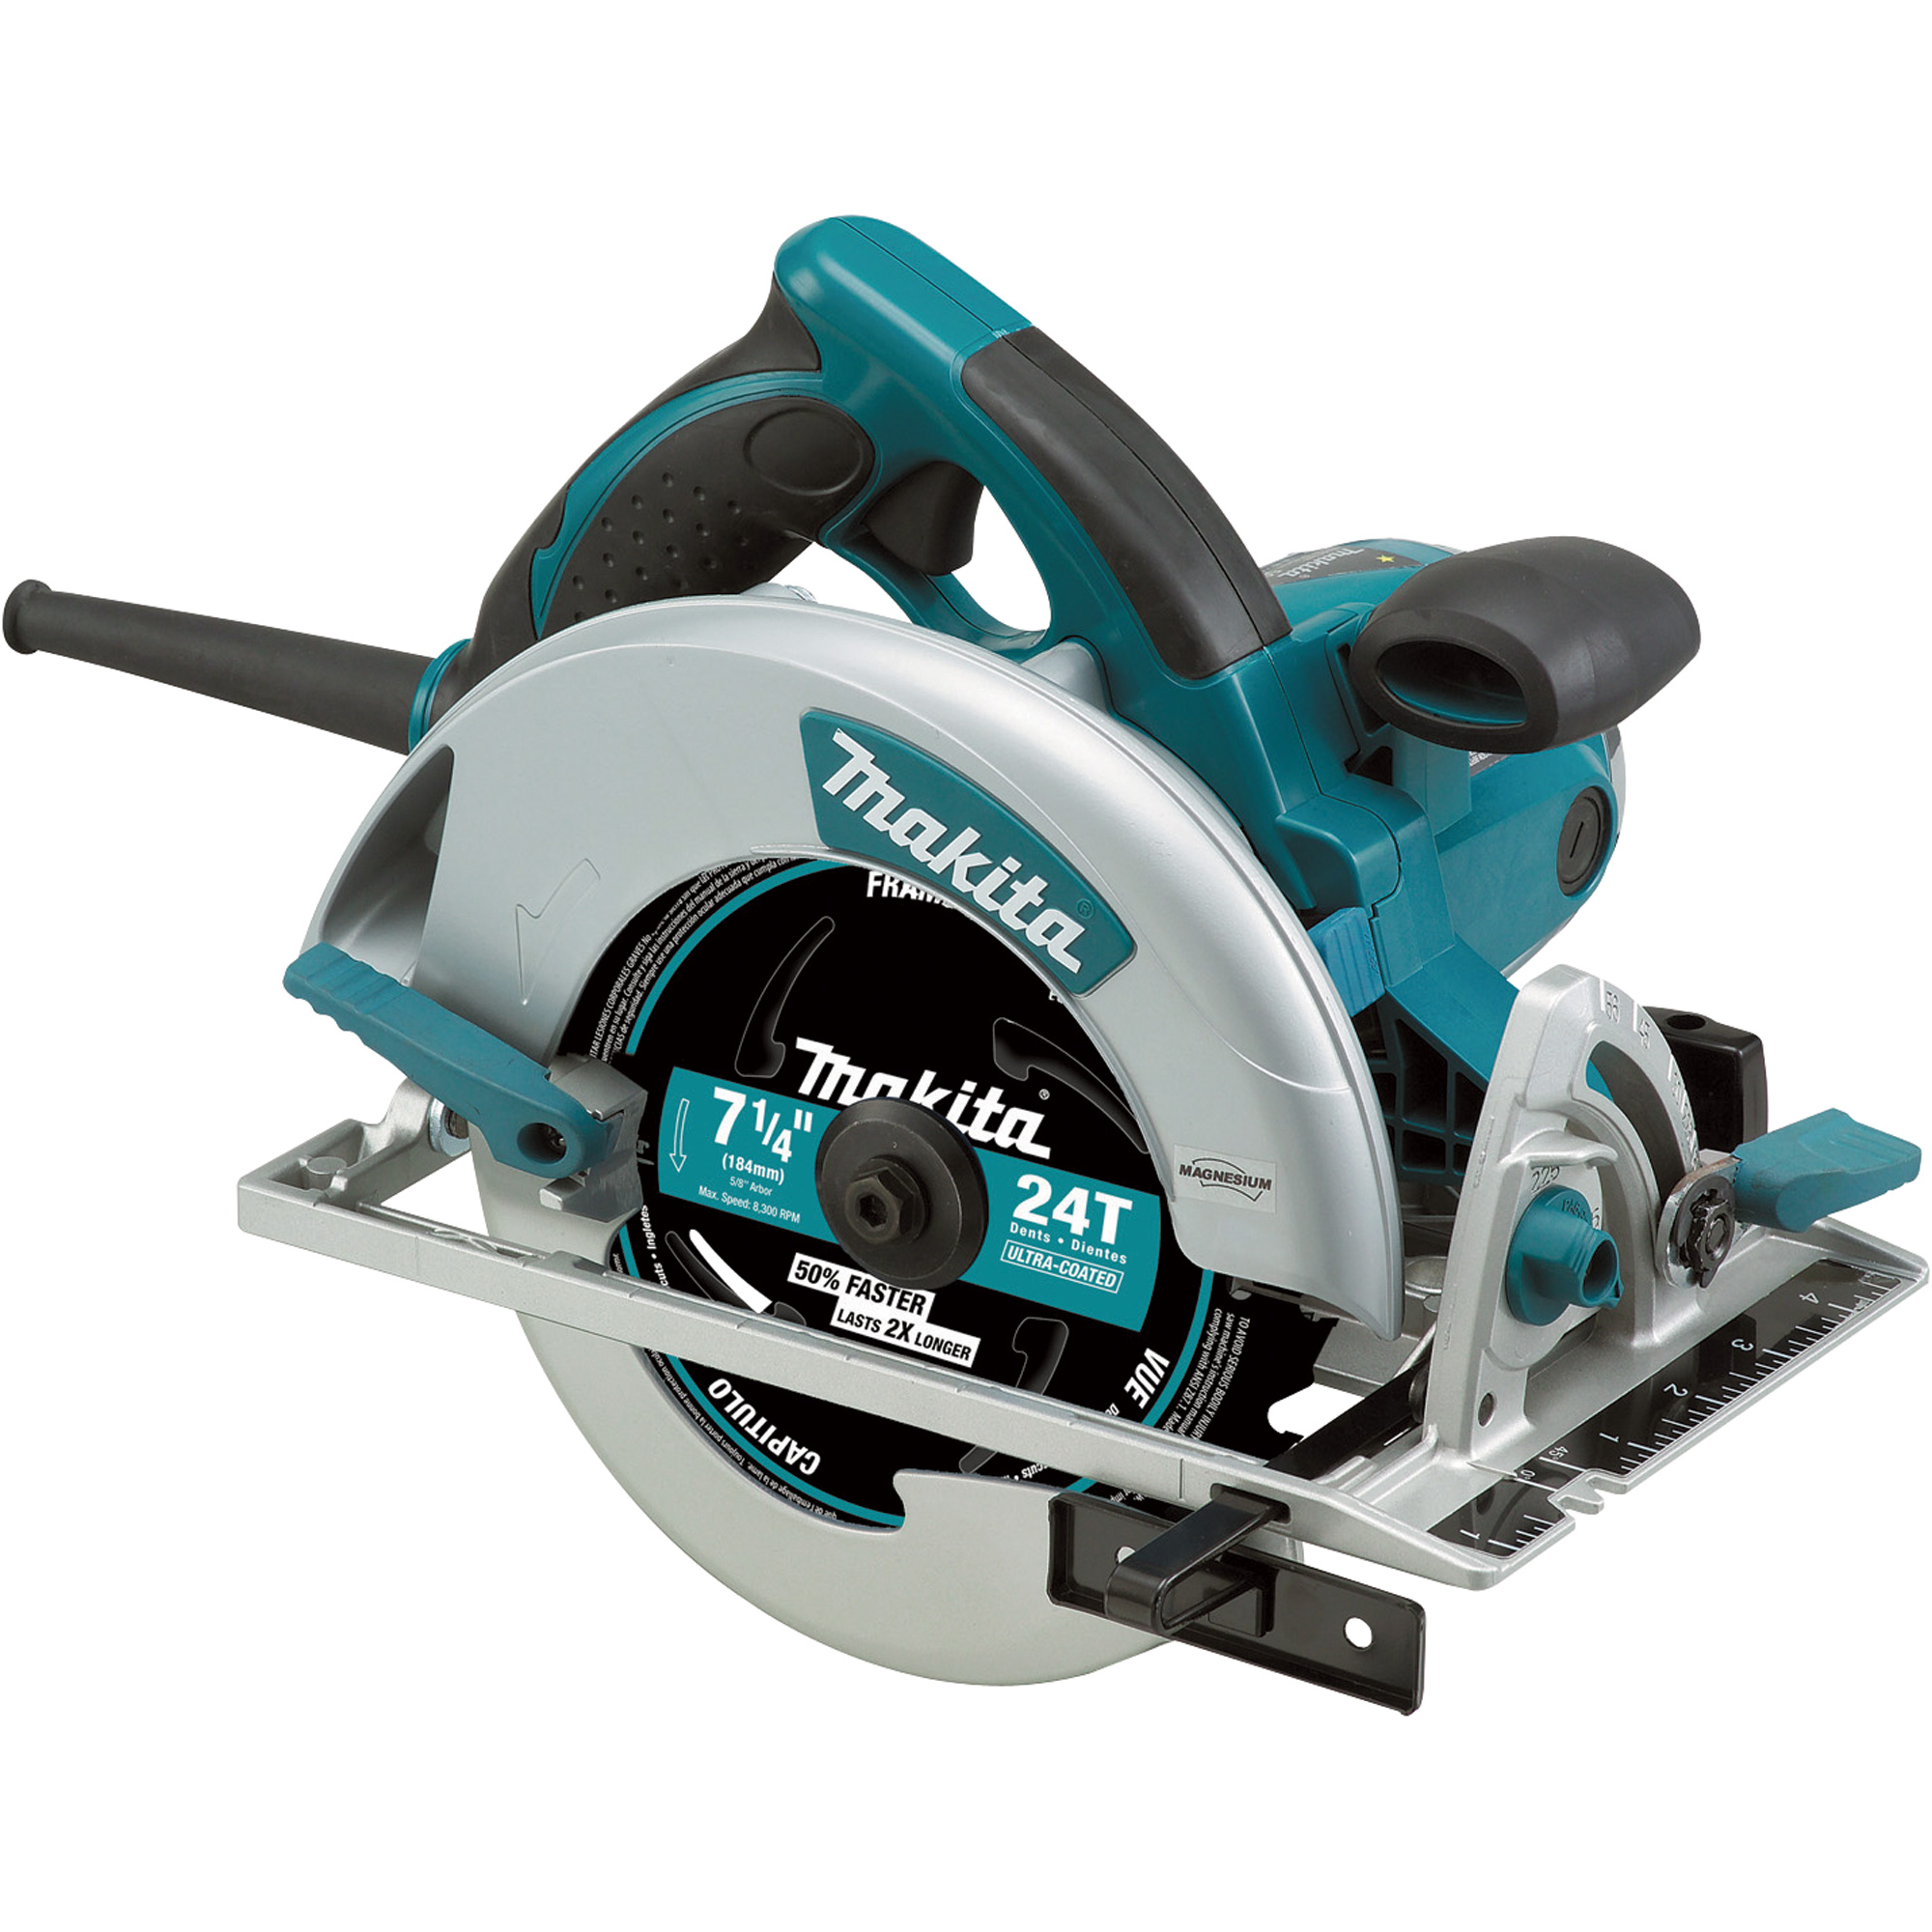 Free shipping makita circular saw 7 14in 15 amp 5800 rpm free shipping makita circular saw 7 14in 15 amp greentooth Image collections